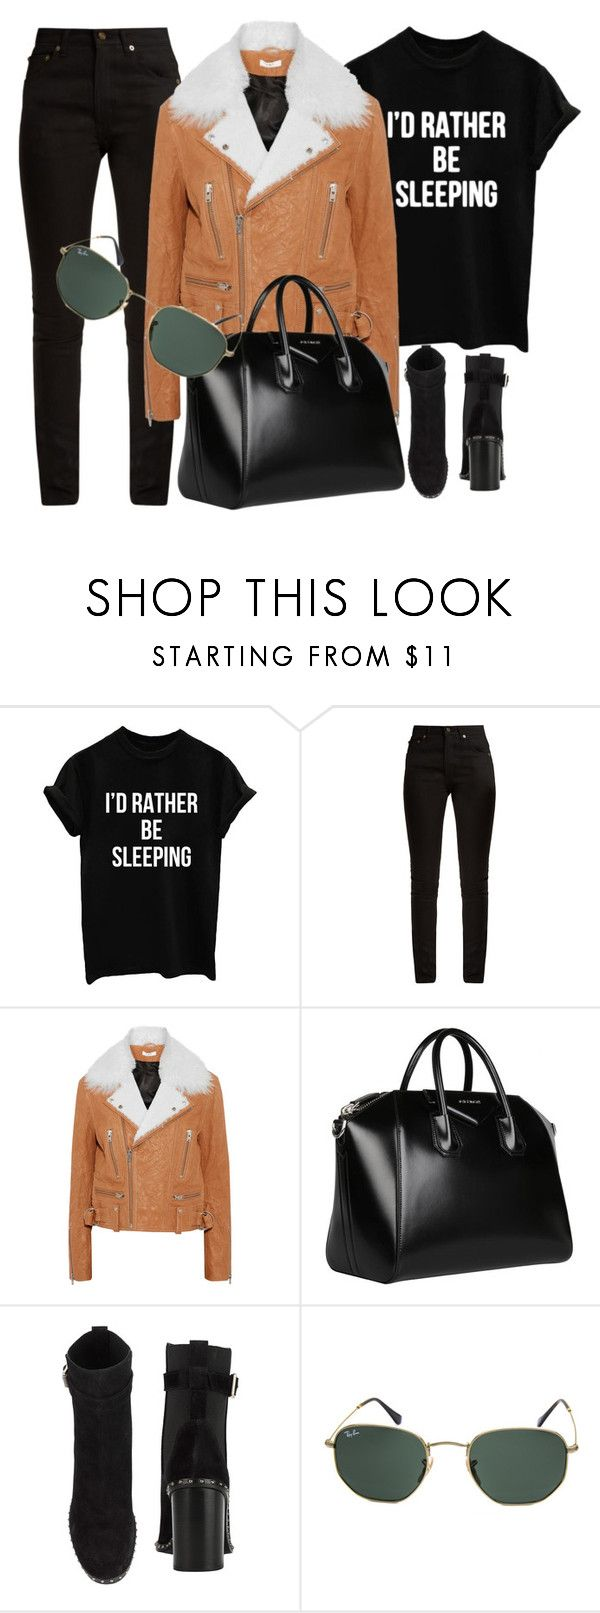 """I'd Rather Be Sleeping"" by smartbuyglasses-uk ❤ liked on Polyvore featuring Yves Saint Laurent, IRO, Givenchy, rag & bone, Ray-Ban, black and brown"